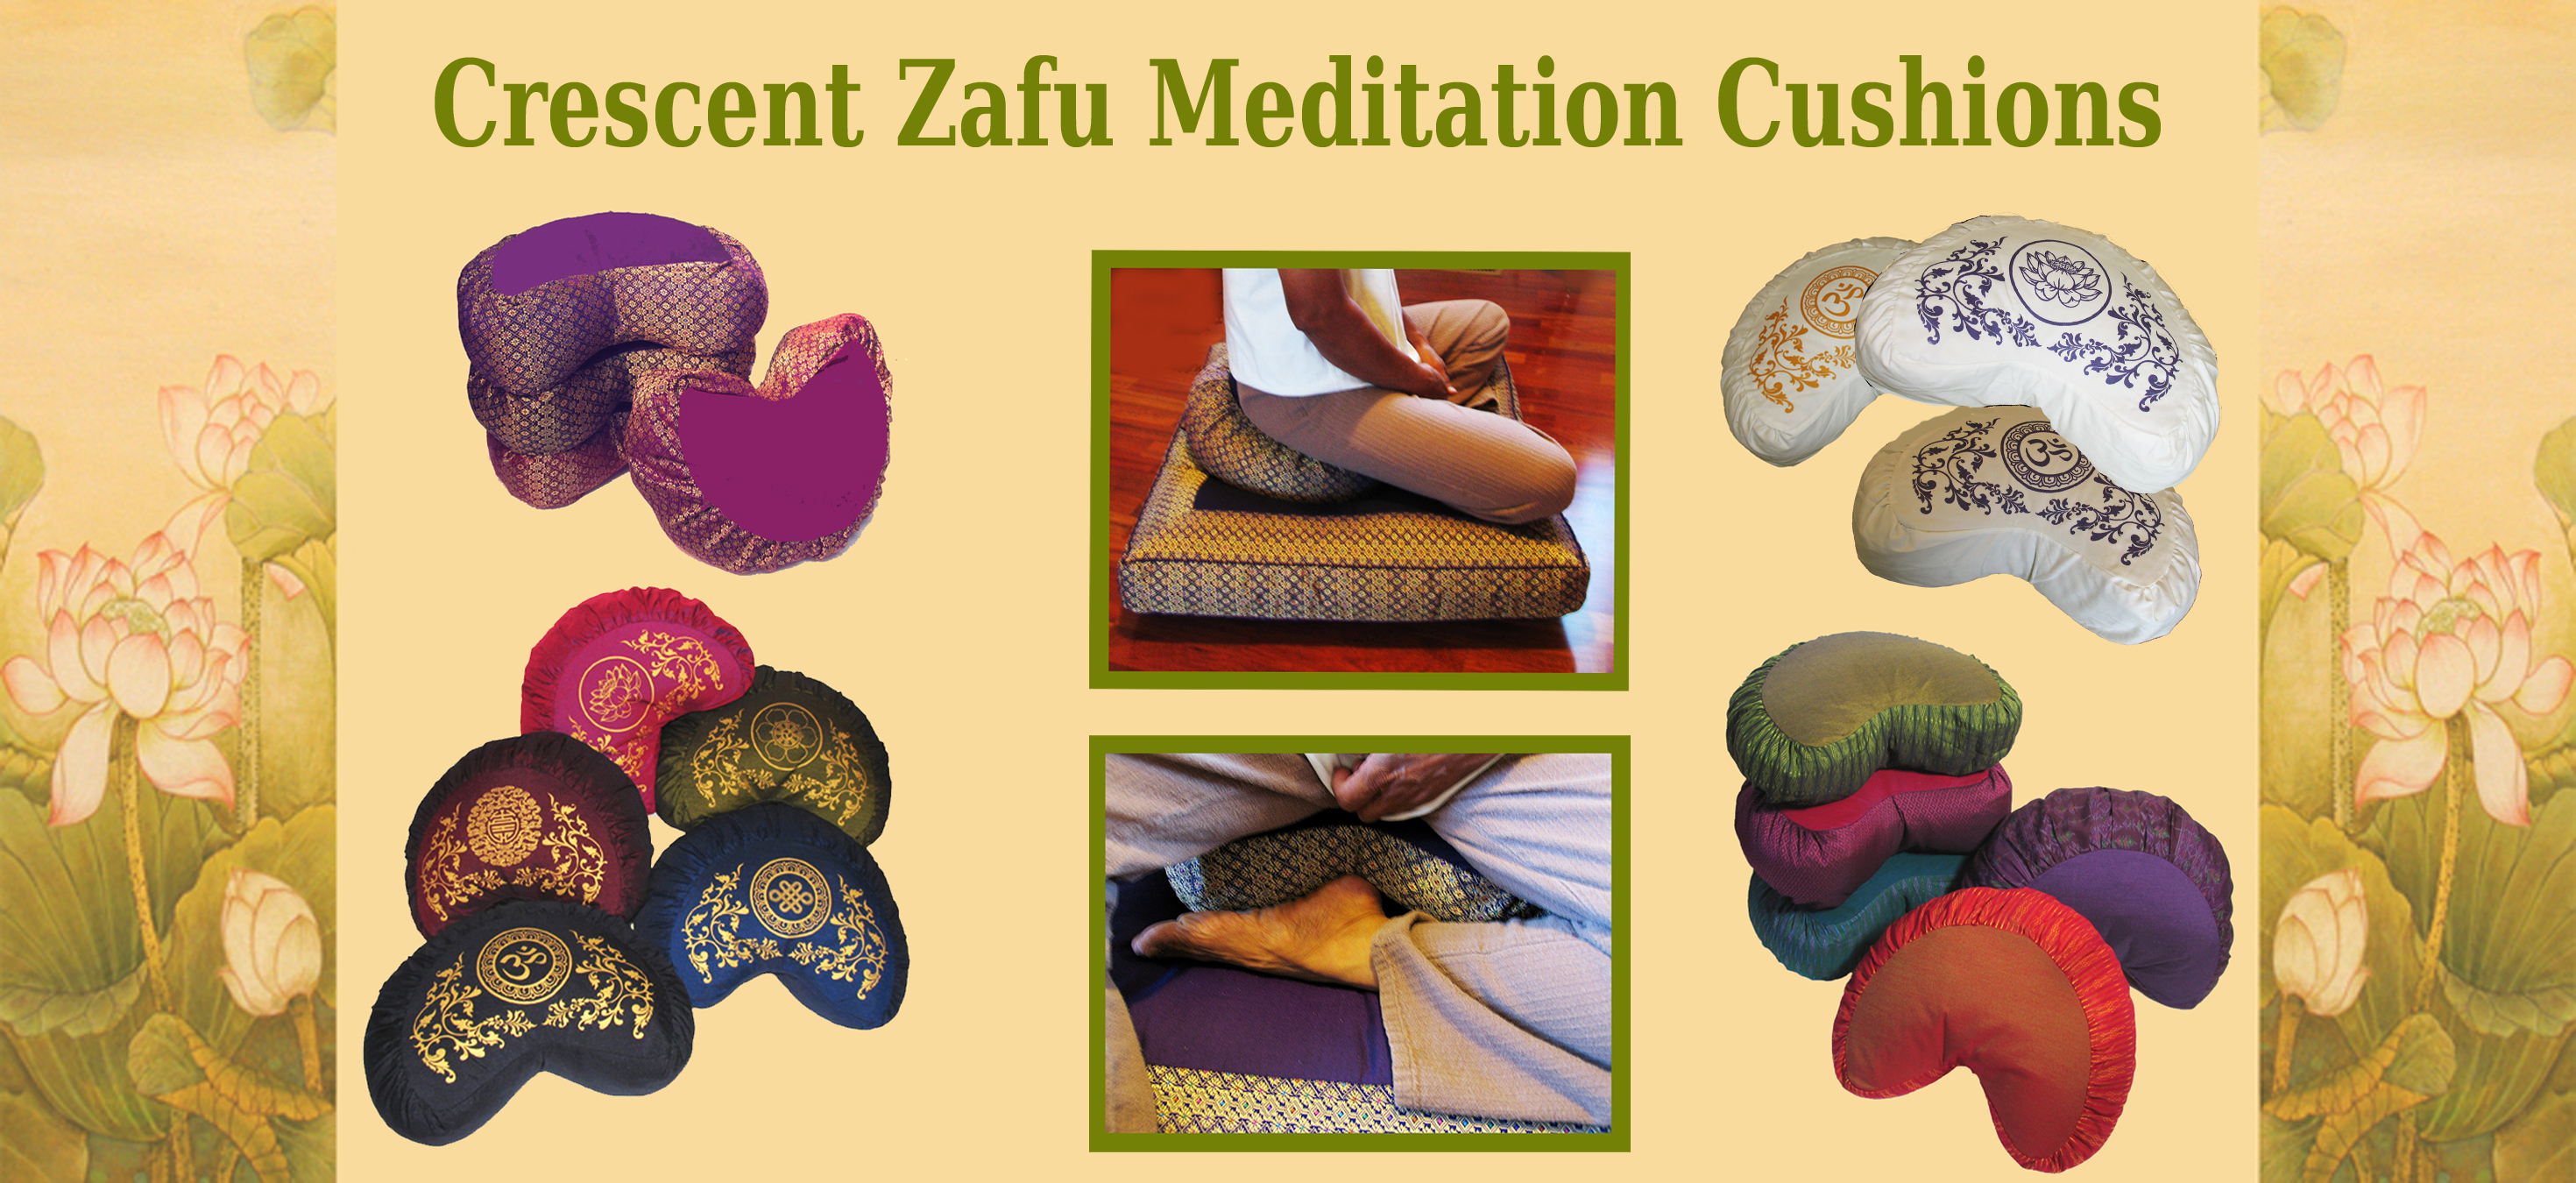 crescent-zafu-meditation-cushion.jpg